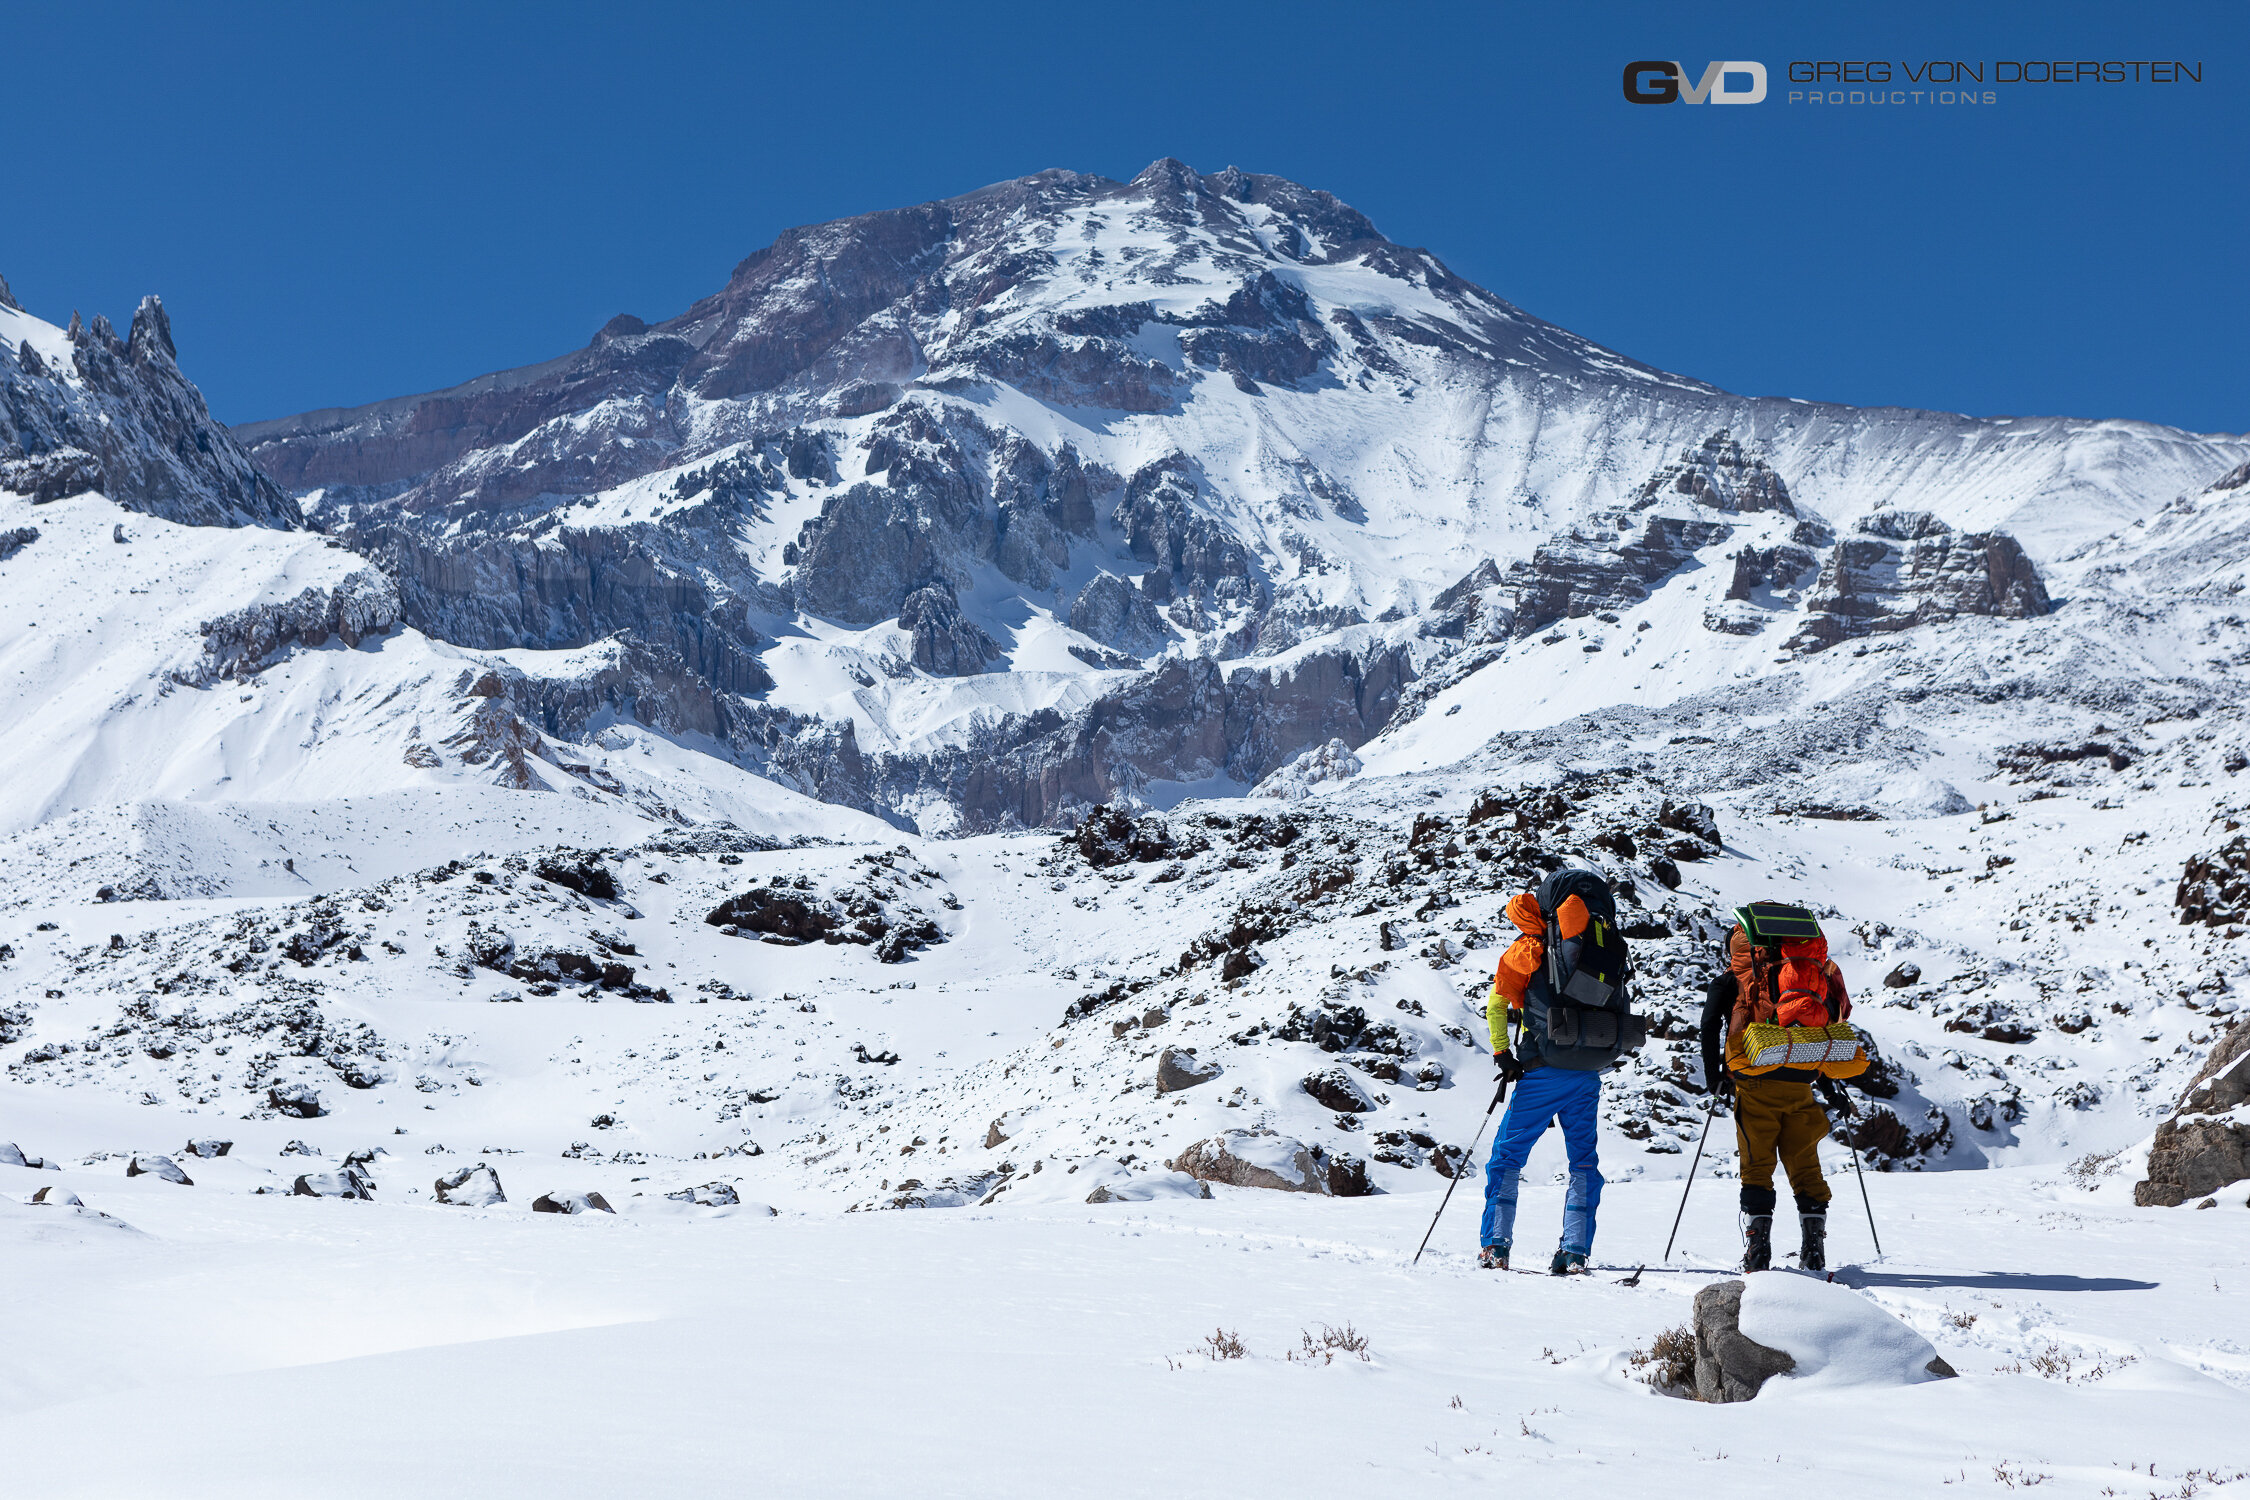 Rafael Pease & Jeremy Anderson looking at Volcan Tupungato with 1 of their 2 backpacks.